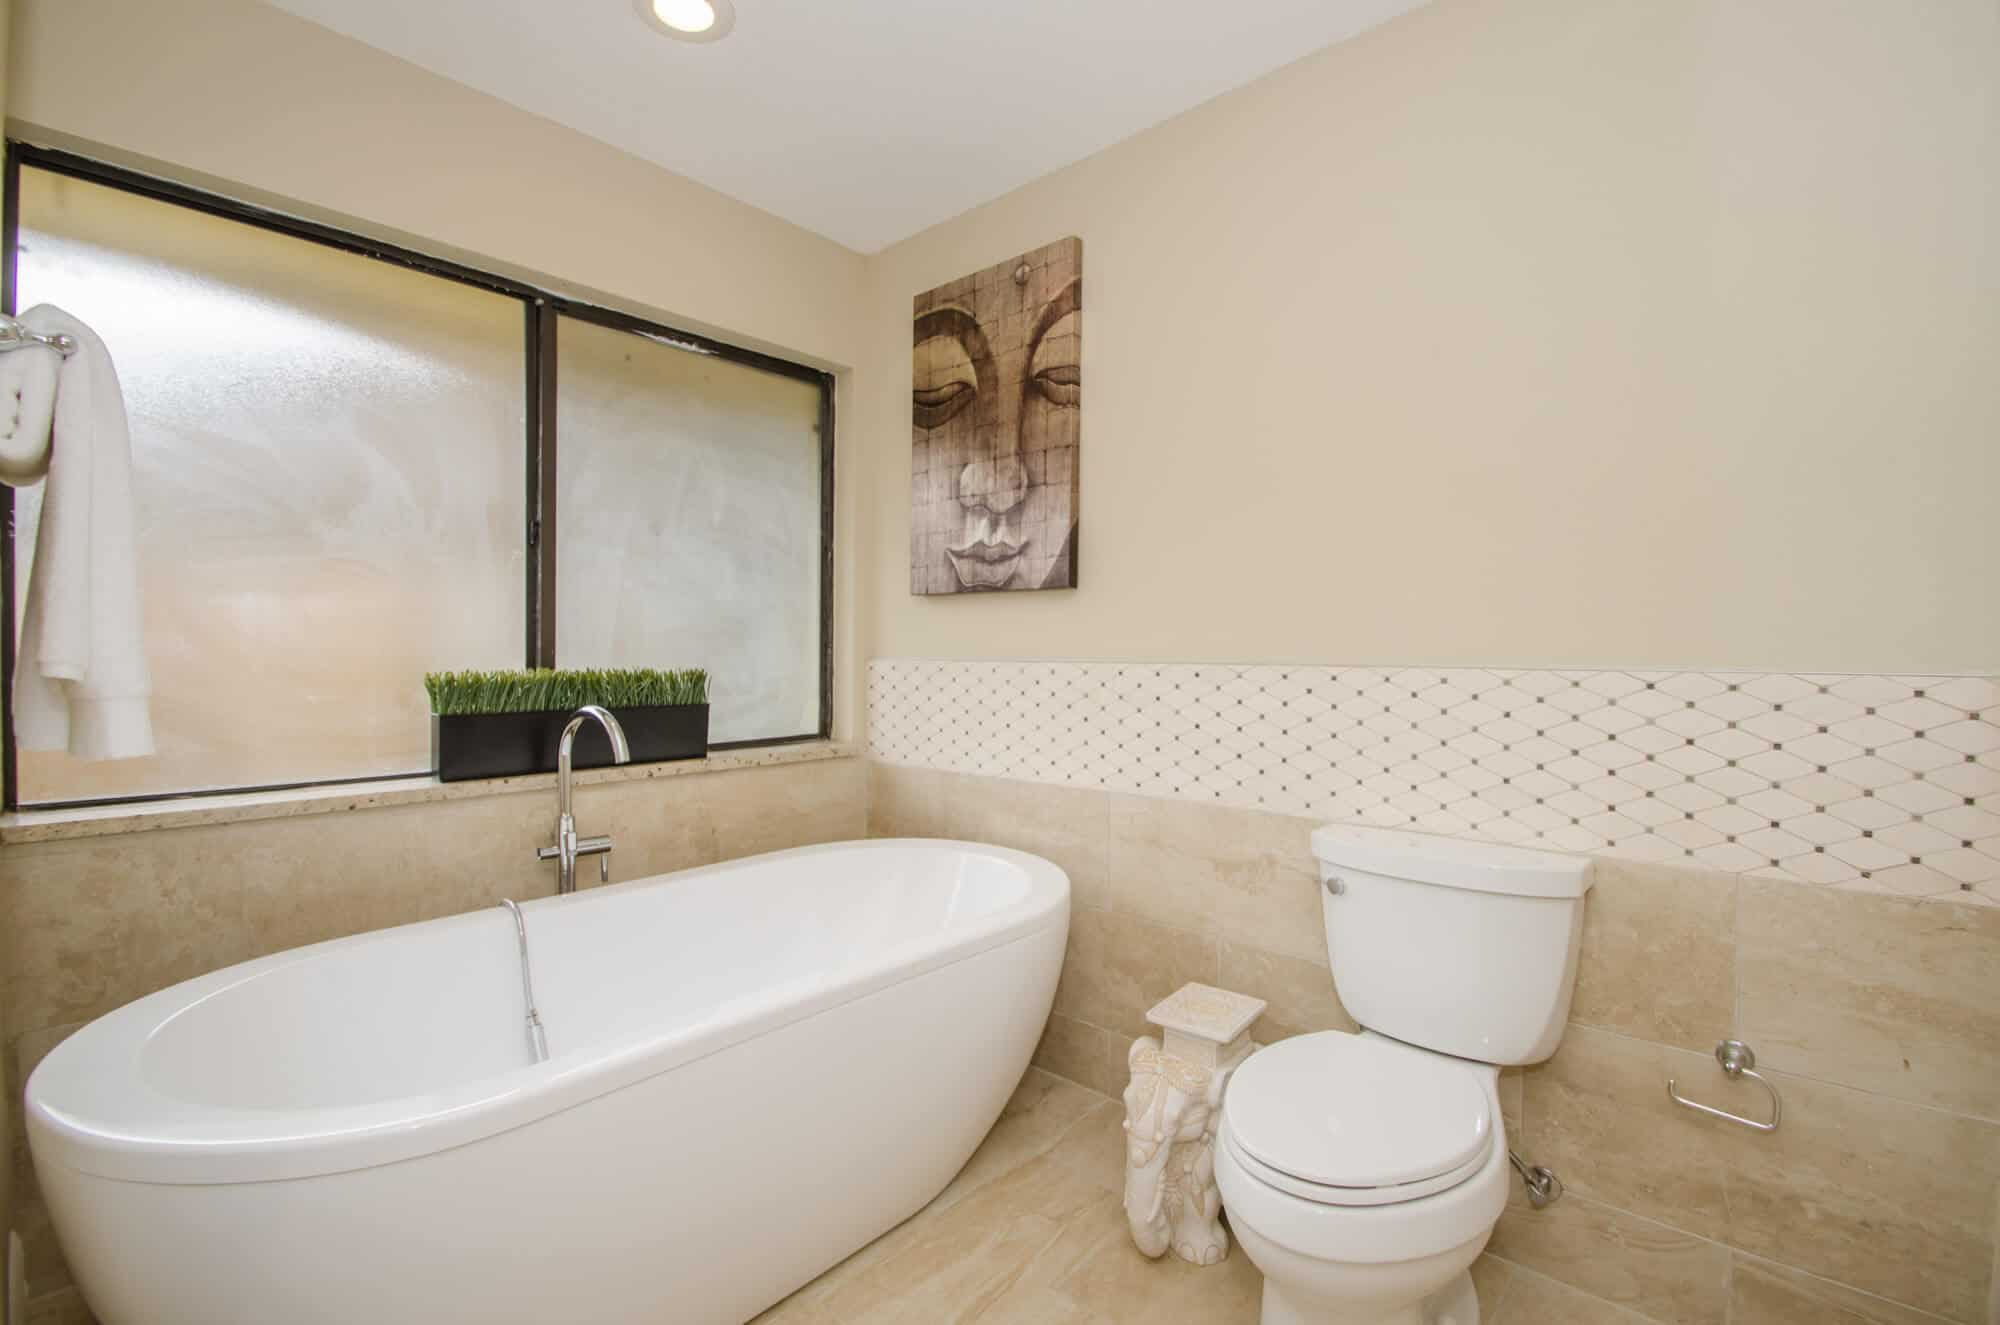 Bath remodel featuring free standing tub